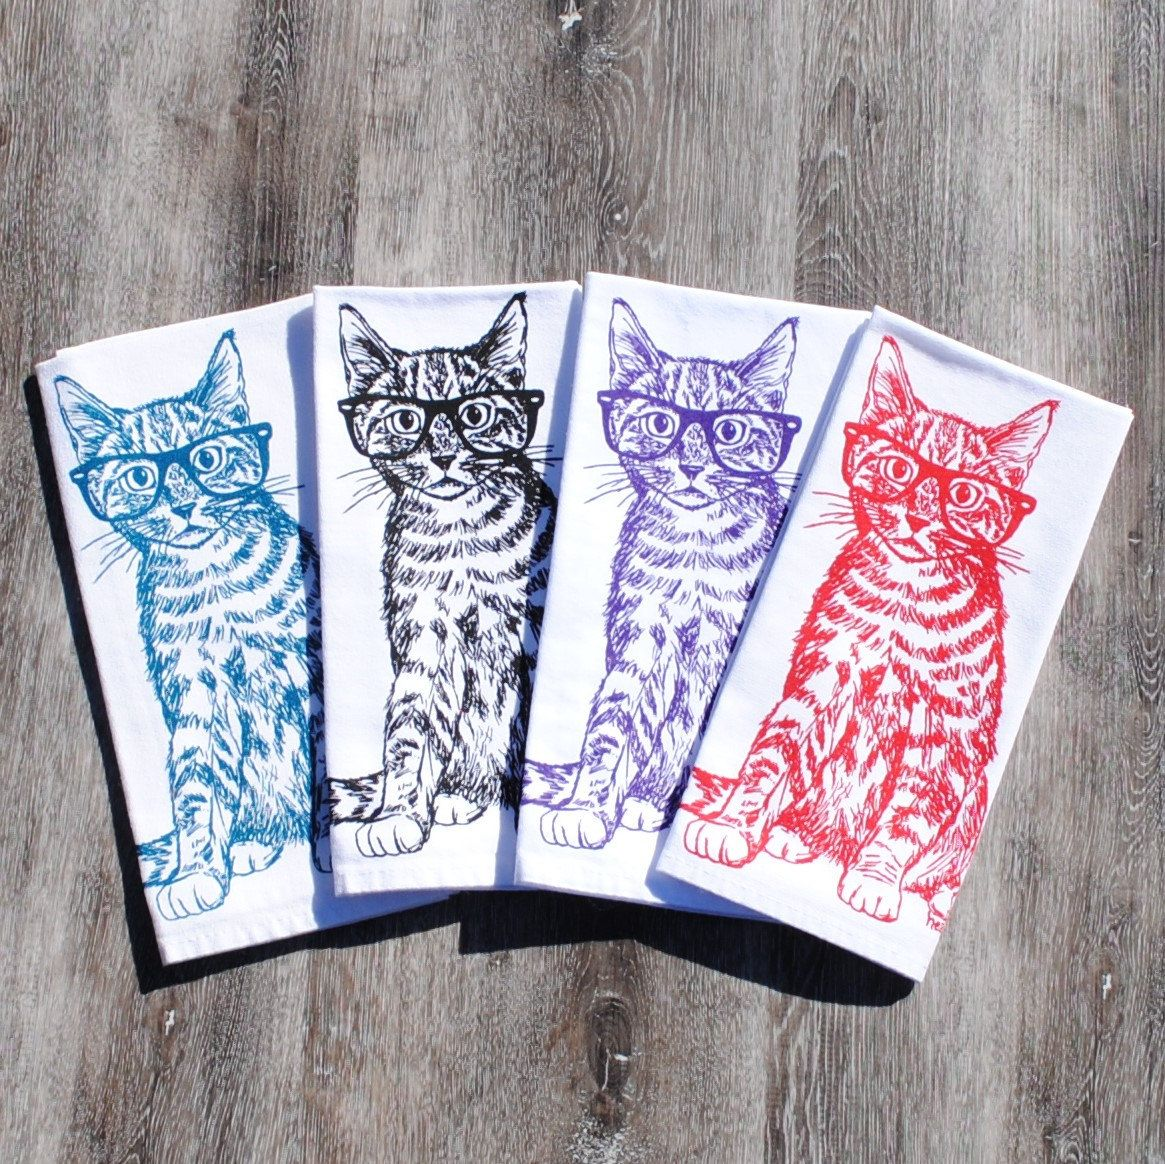 Kitchen Napkins Upholstered Chairs With Casters Set Of 4 Cat Cloth 6 Animal Cotton